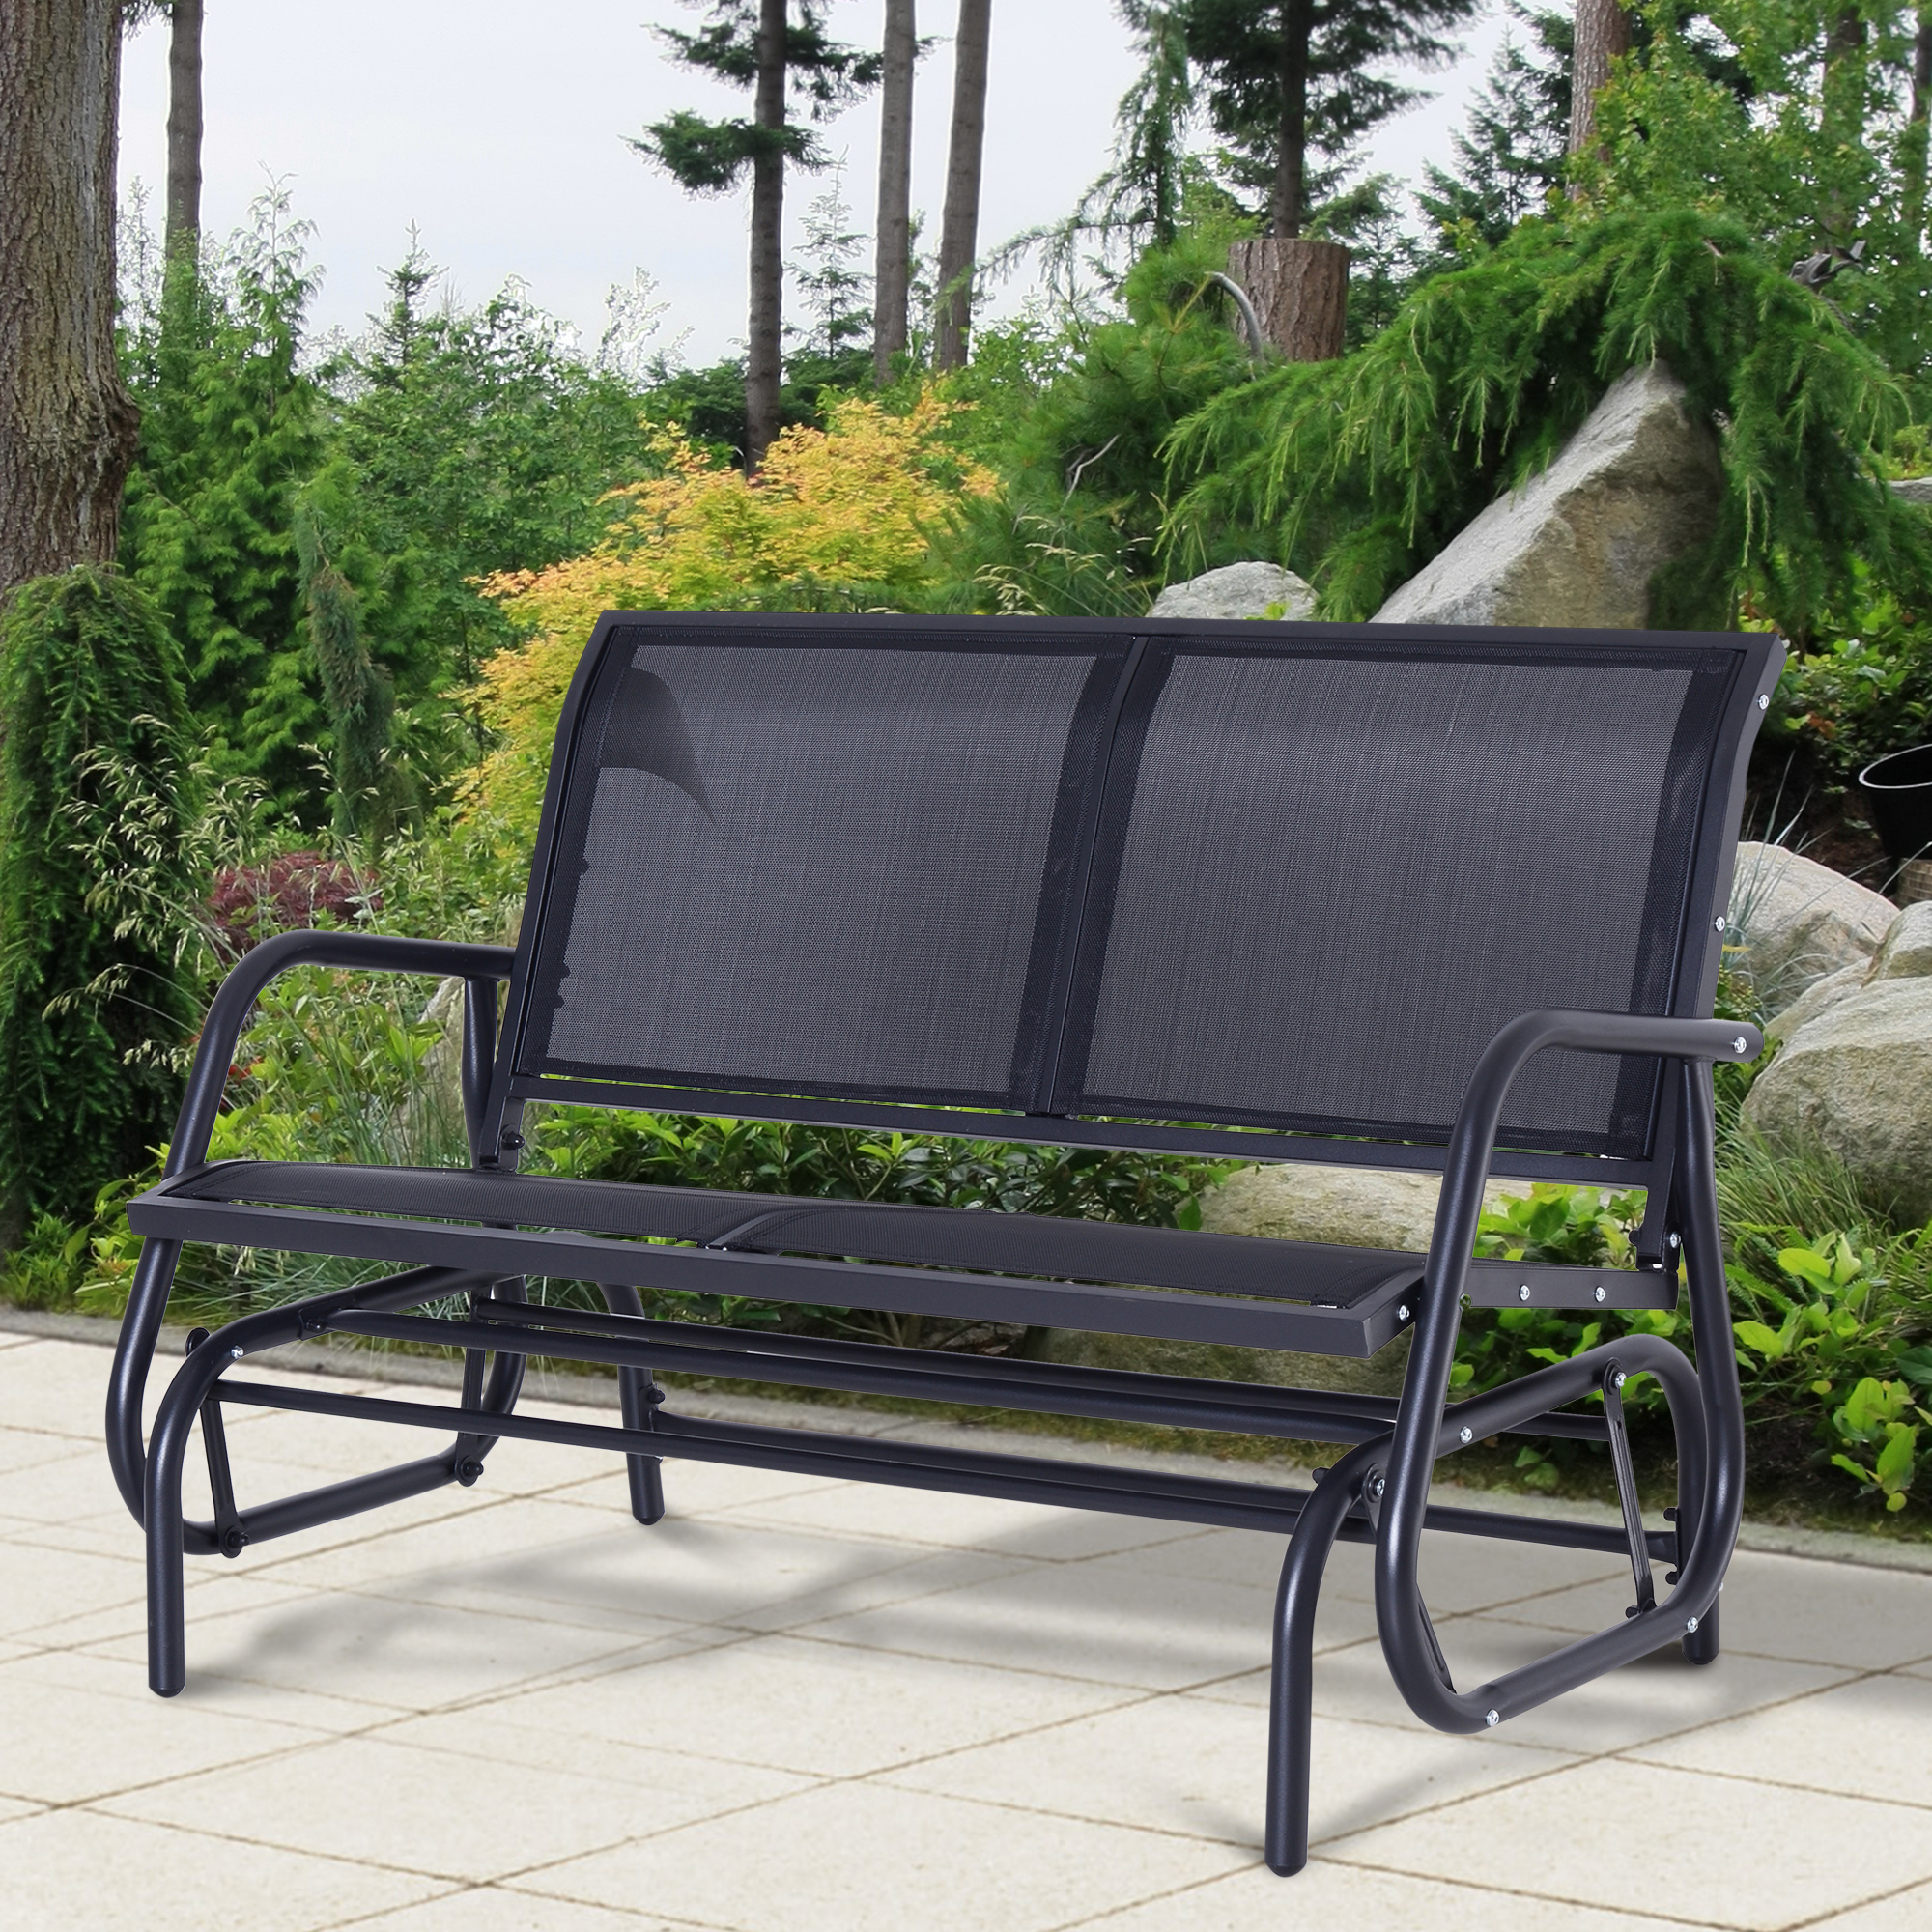 Details About Outsunny Patio Garden Glider Bench 2 Person Double Swing Chair Rocker Deck Black For Most Recently Released Rocking Love Seats Glider Swing Benches With Sturdy Frame (View 13 of 25)